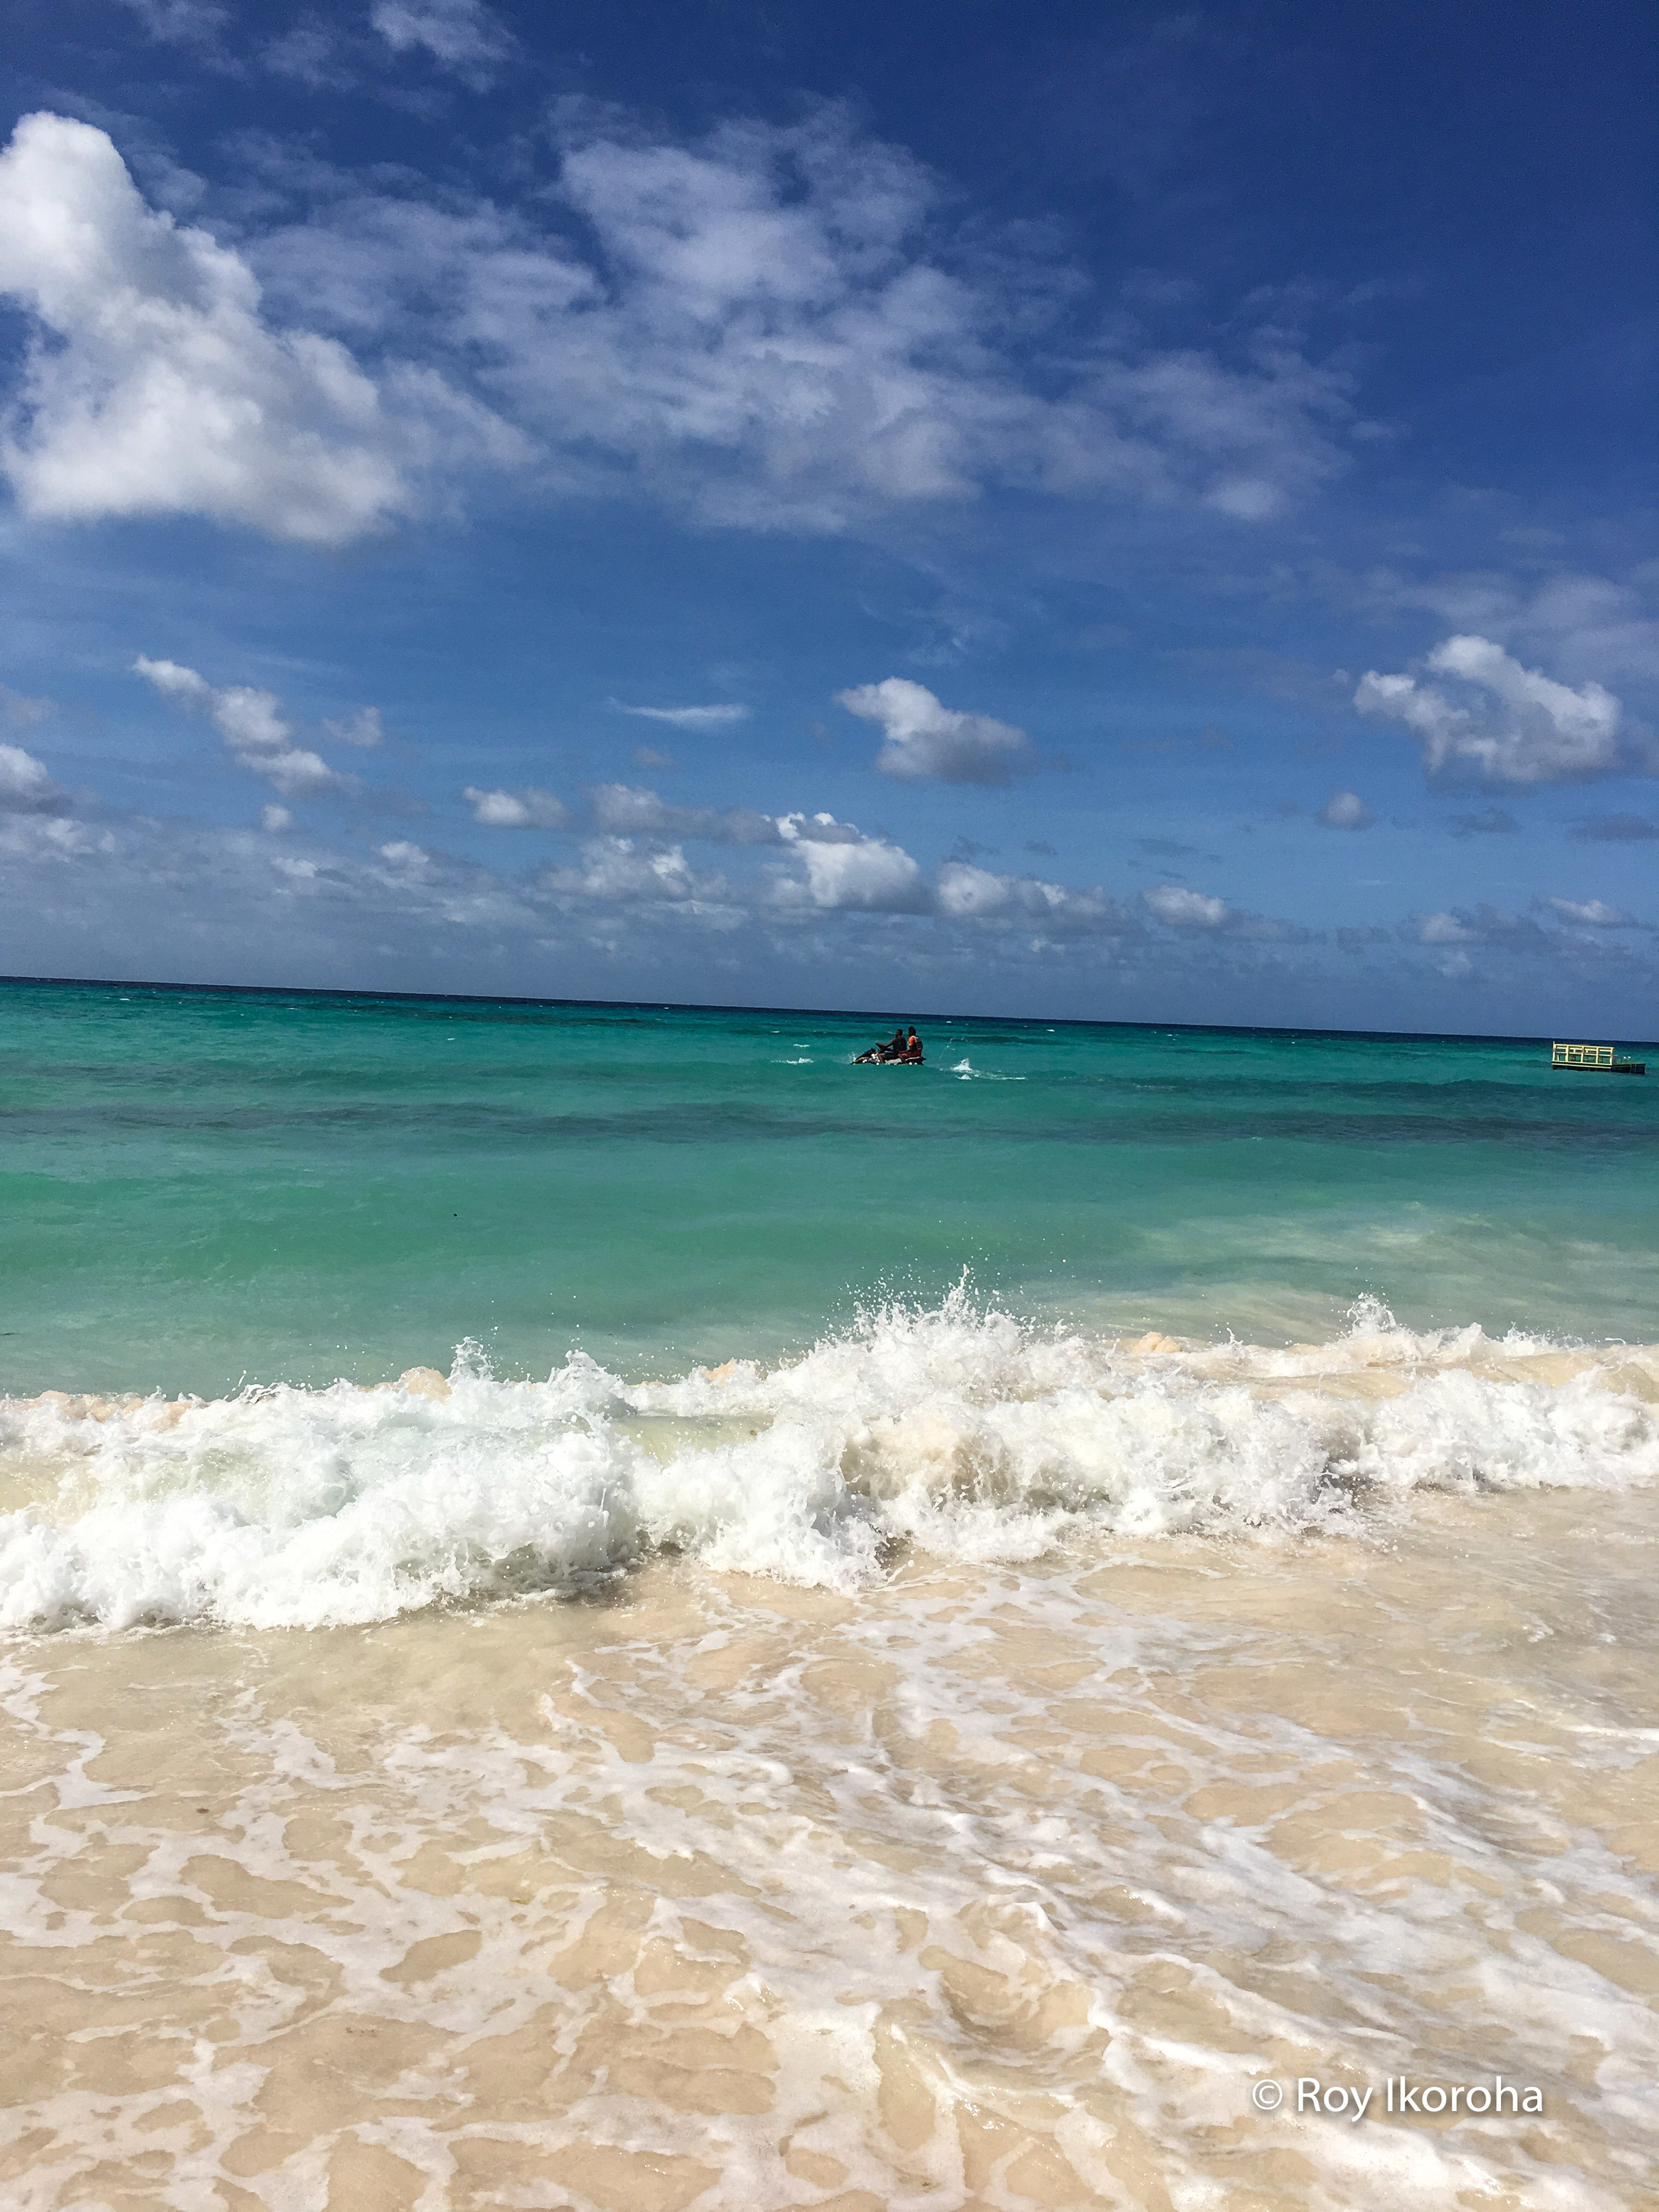 Taking to Jet Skiing at Butterfly Beach, Barbados